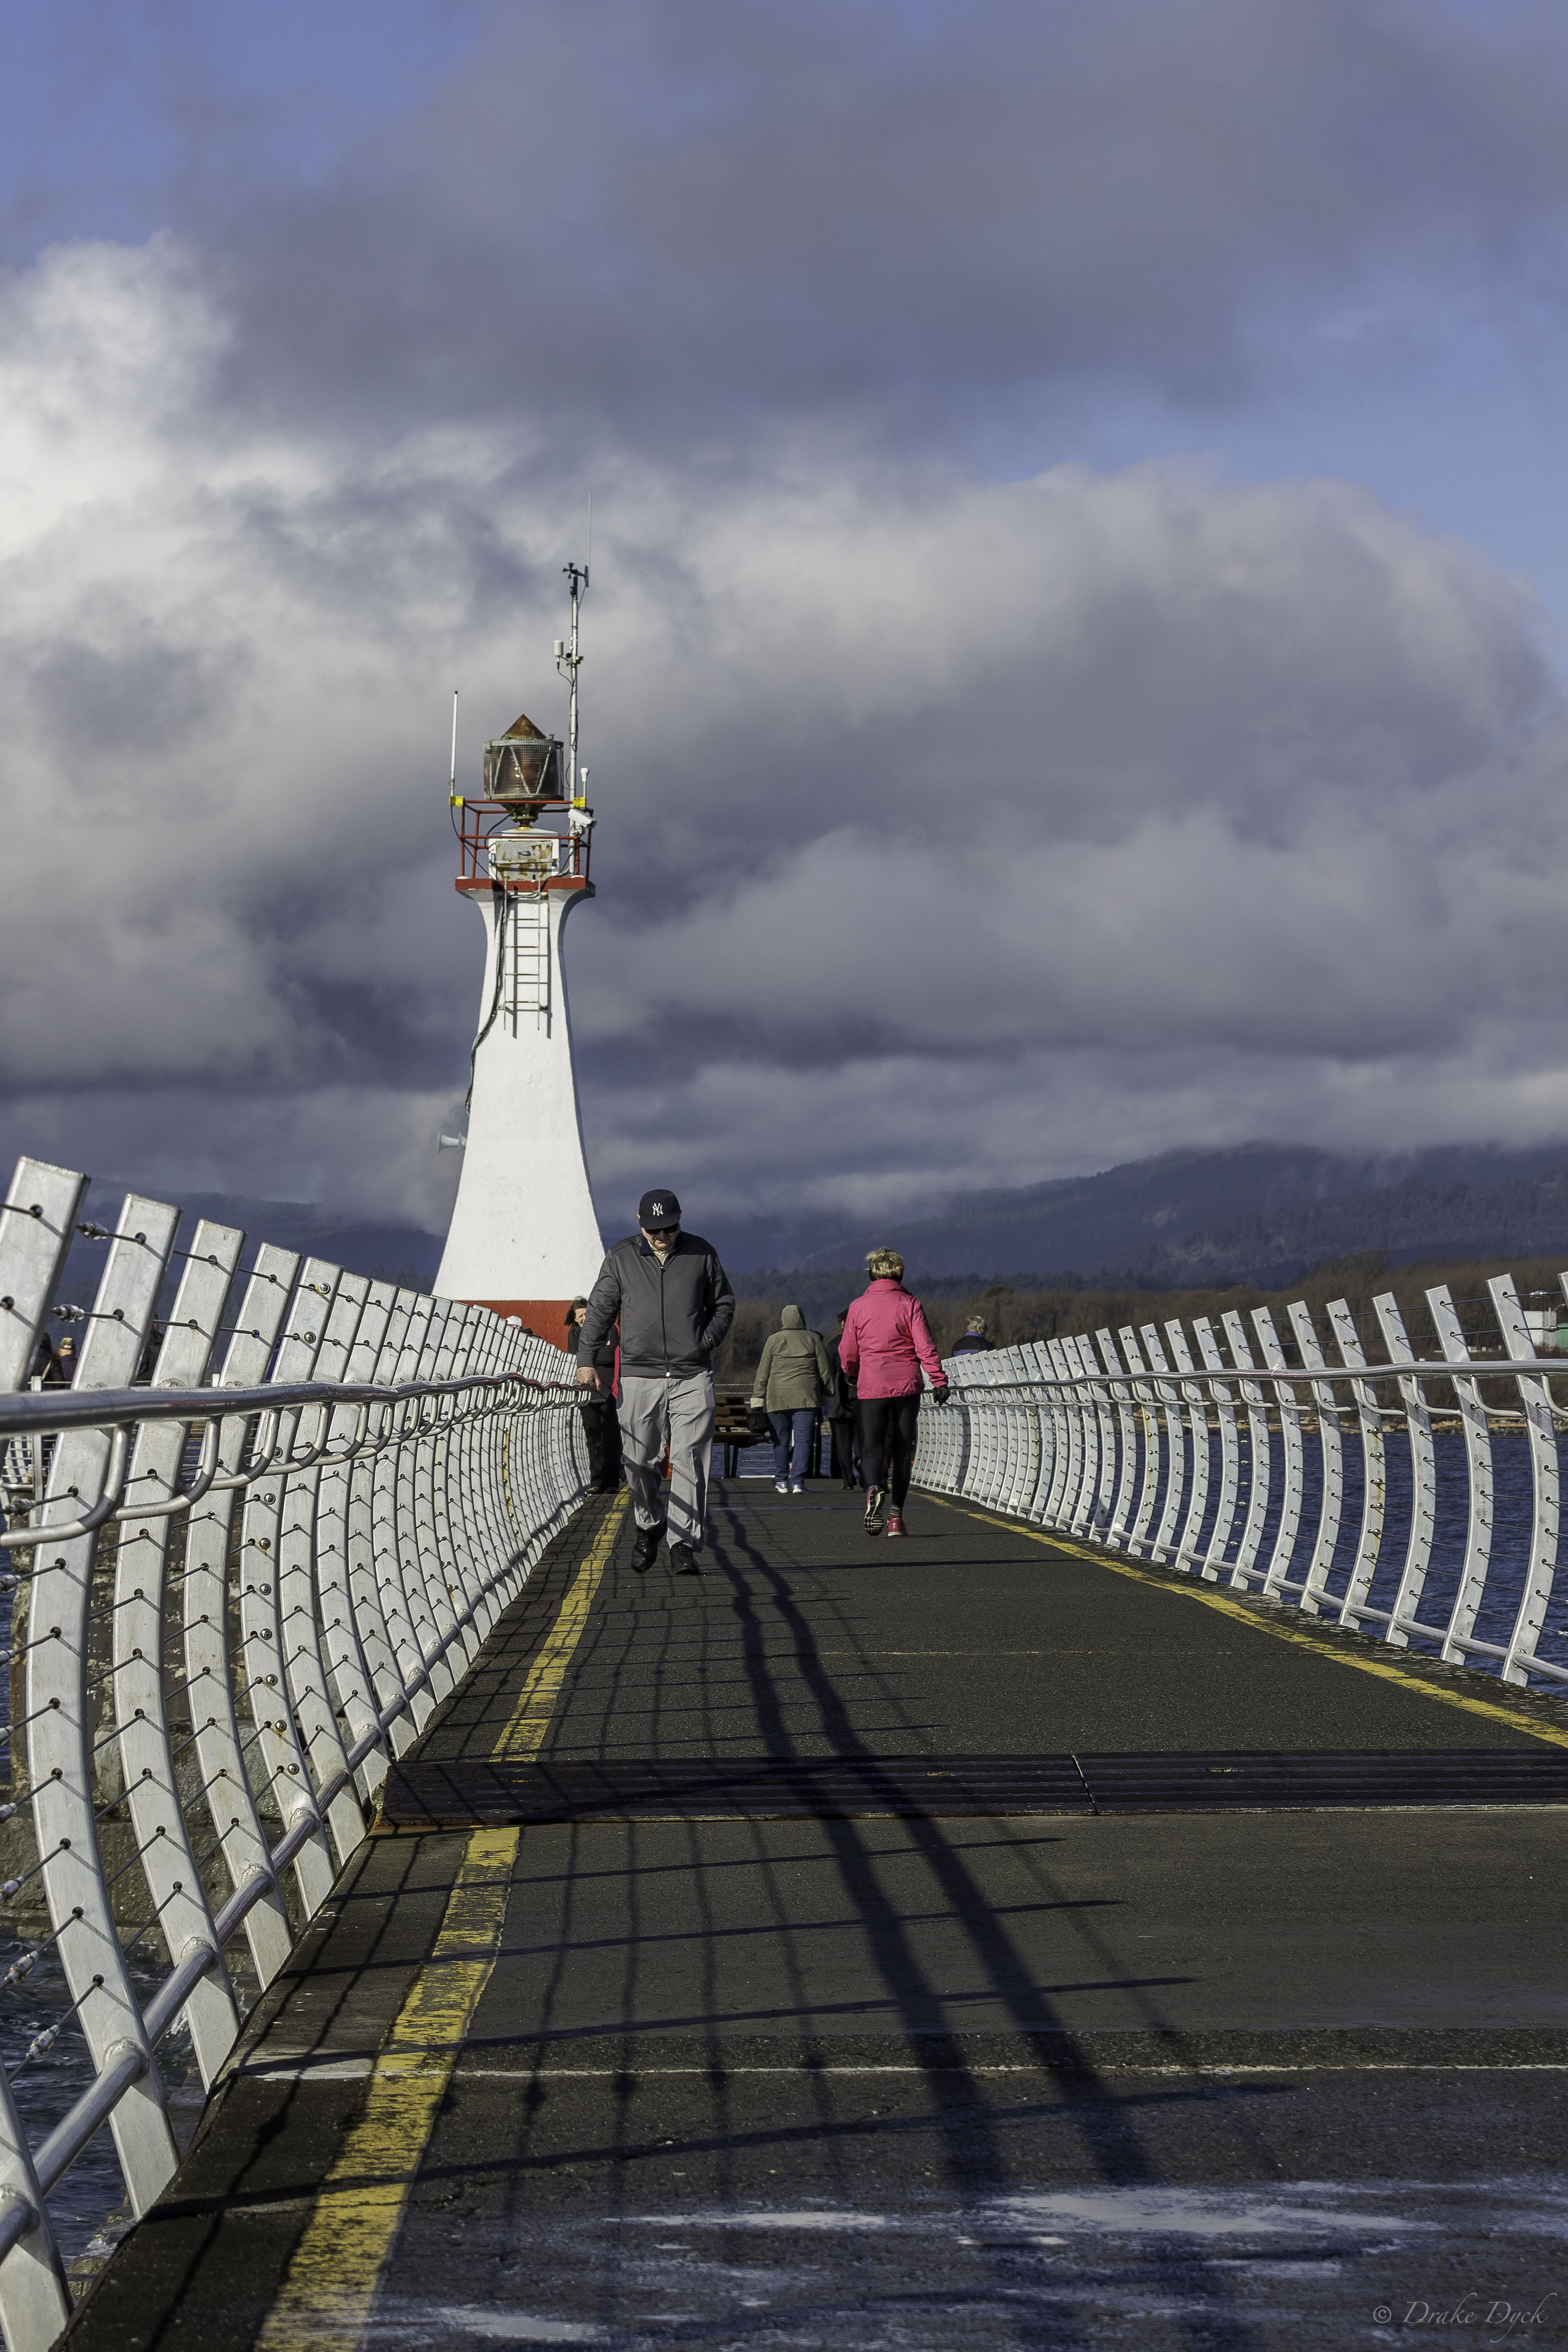 silver rails line the path to the lighthouse at the end of the breakwater